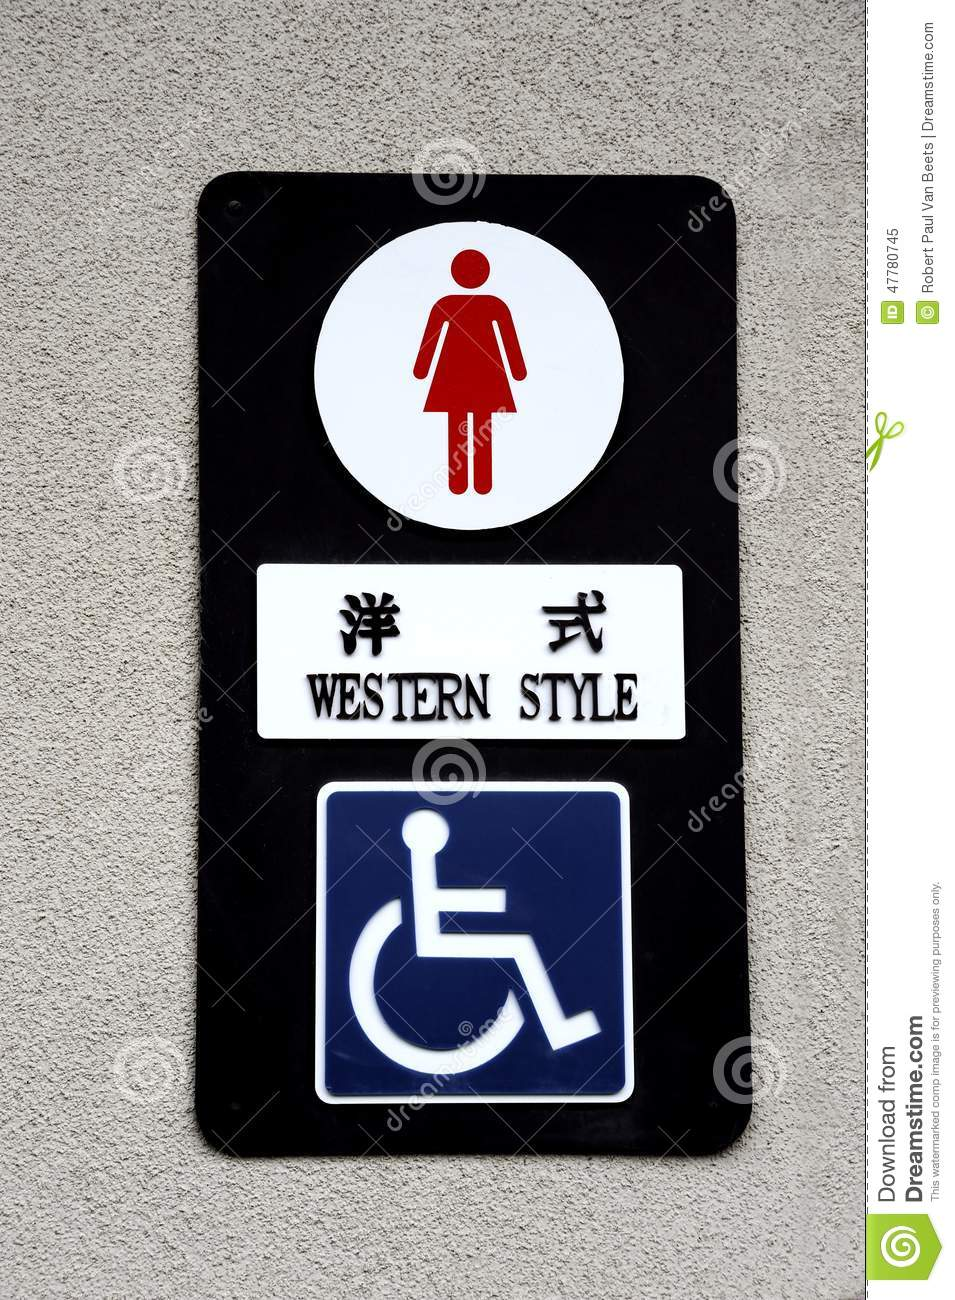 Bathroom Signs Japan toilet sign in japan stock illustration - image: 47780745